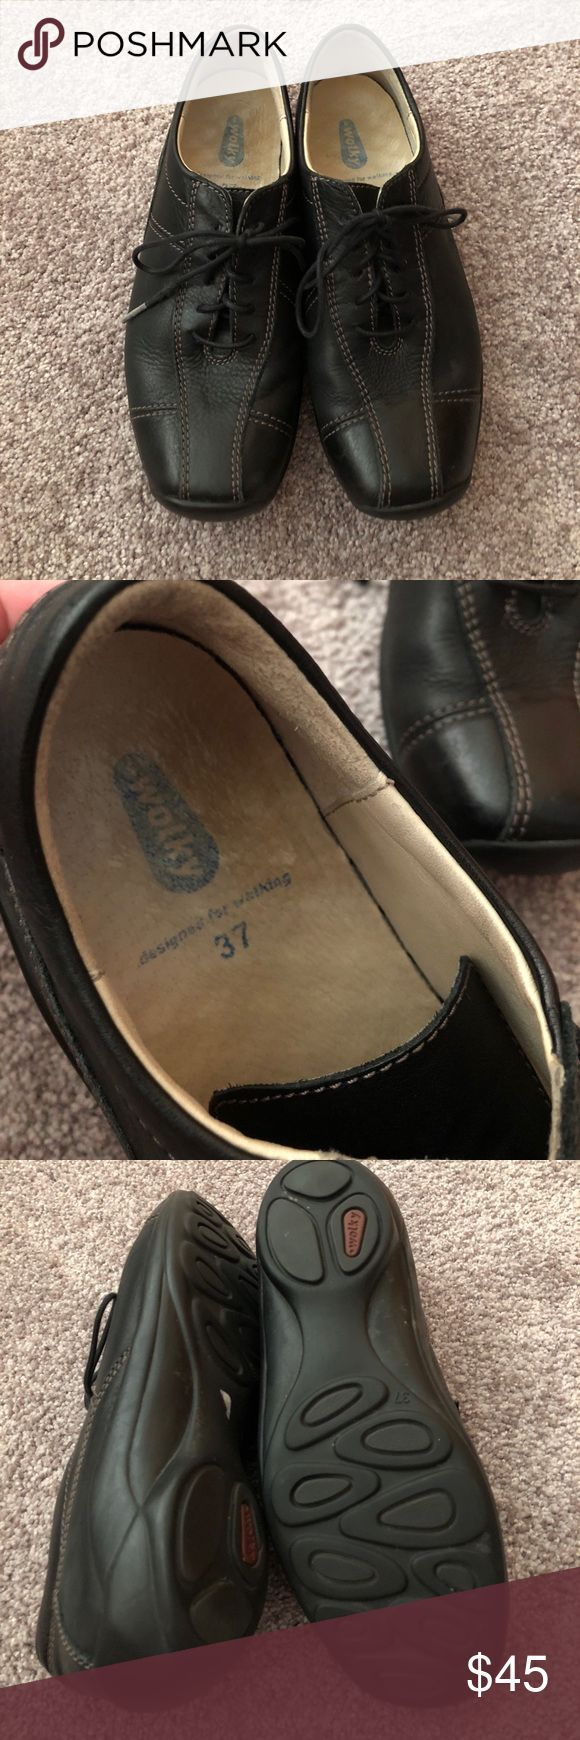 Wolky 37 black shoes Very well made, soft leather, lace up shoes. Excellent condition! Wolky Shoes Flats & Loafers